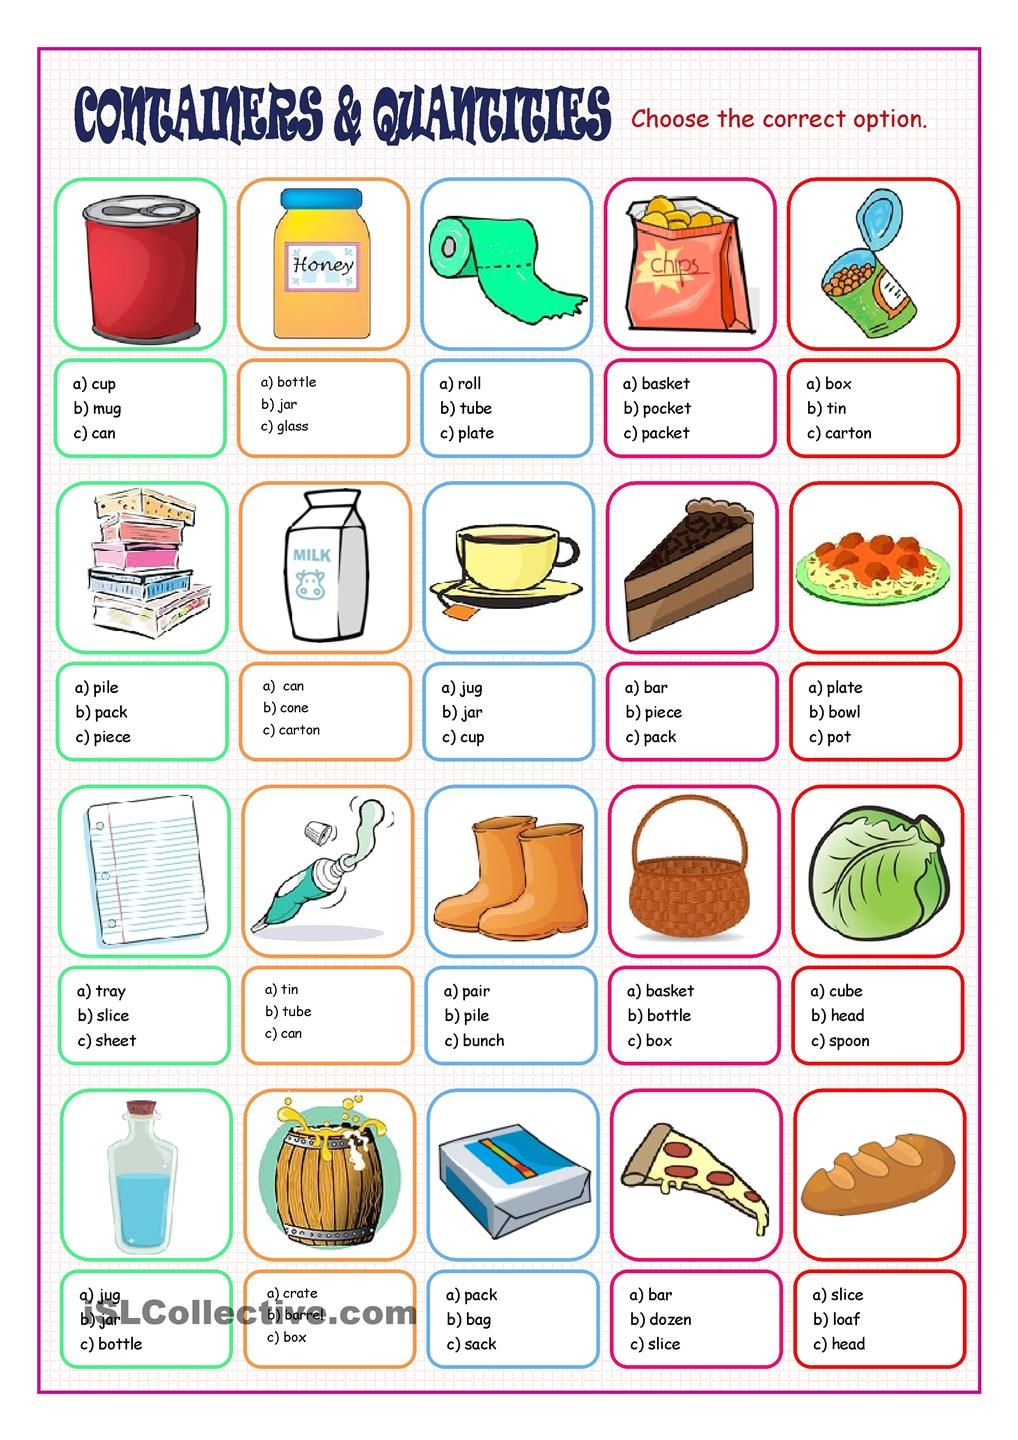 Containers & Quantities Multiple Choice | ESL Grammar | Pinterest ...